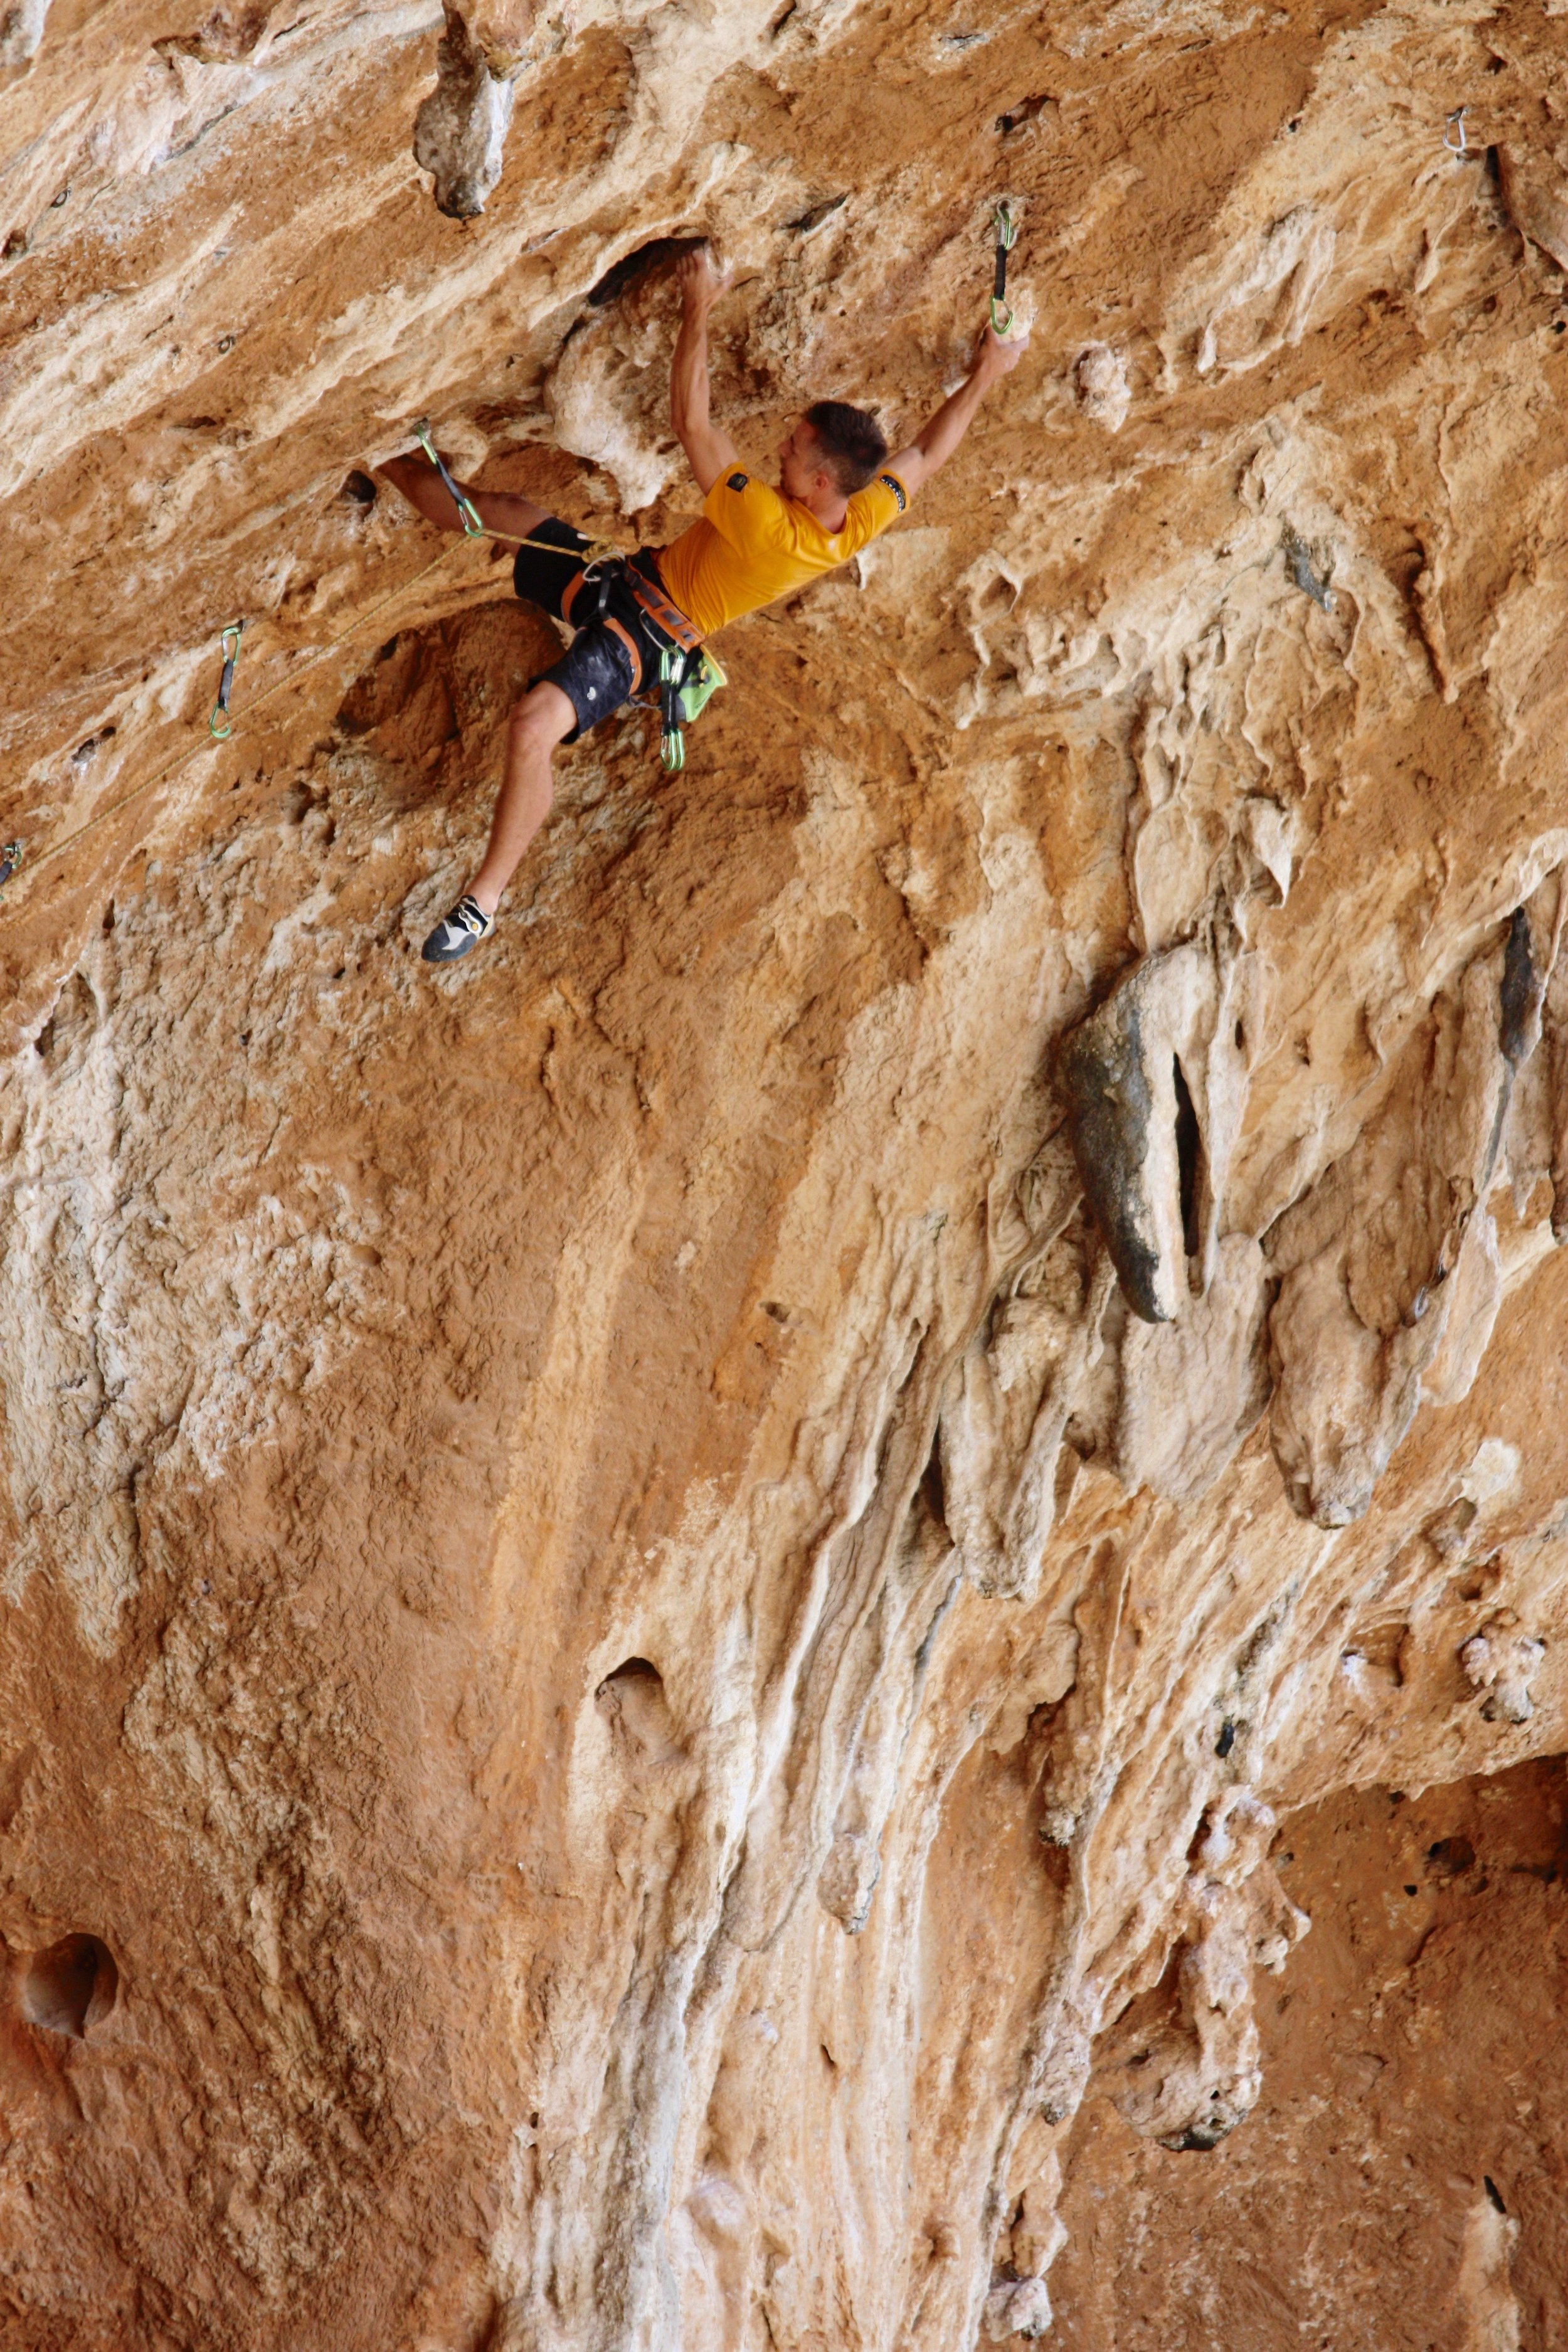 Labyrinth 8a+, Jurassic Park, Kalymnos.  Photo: Simon Kincaid